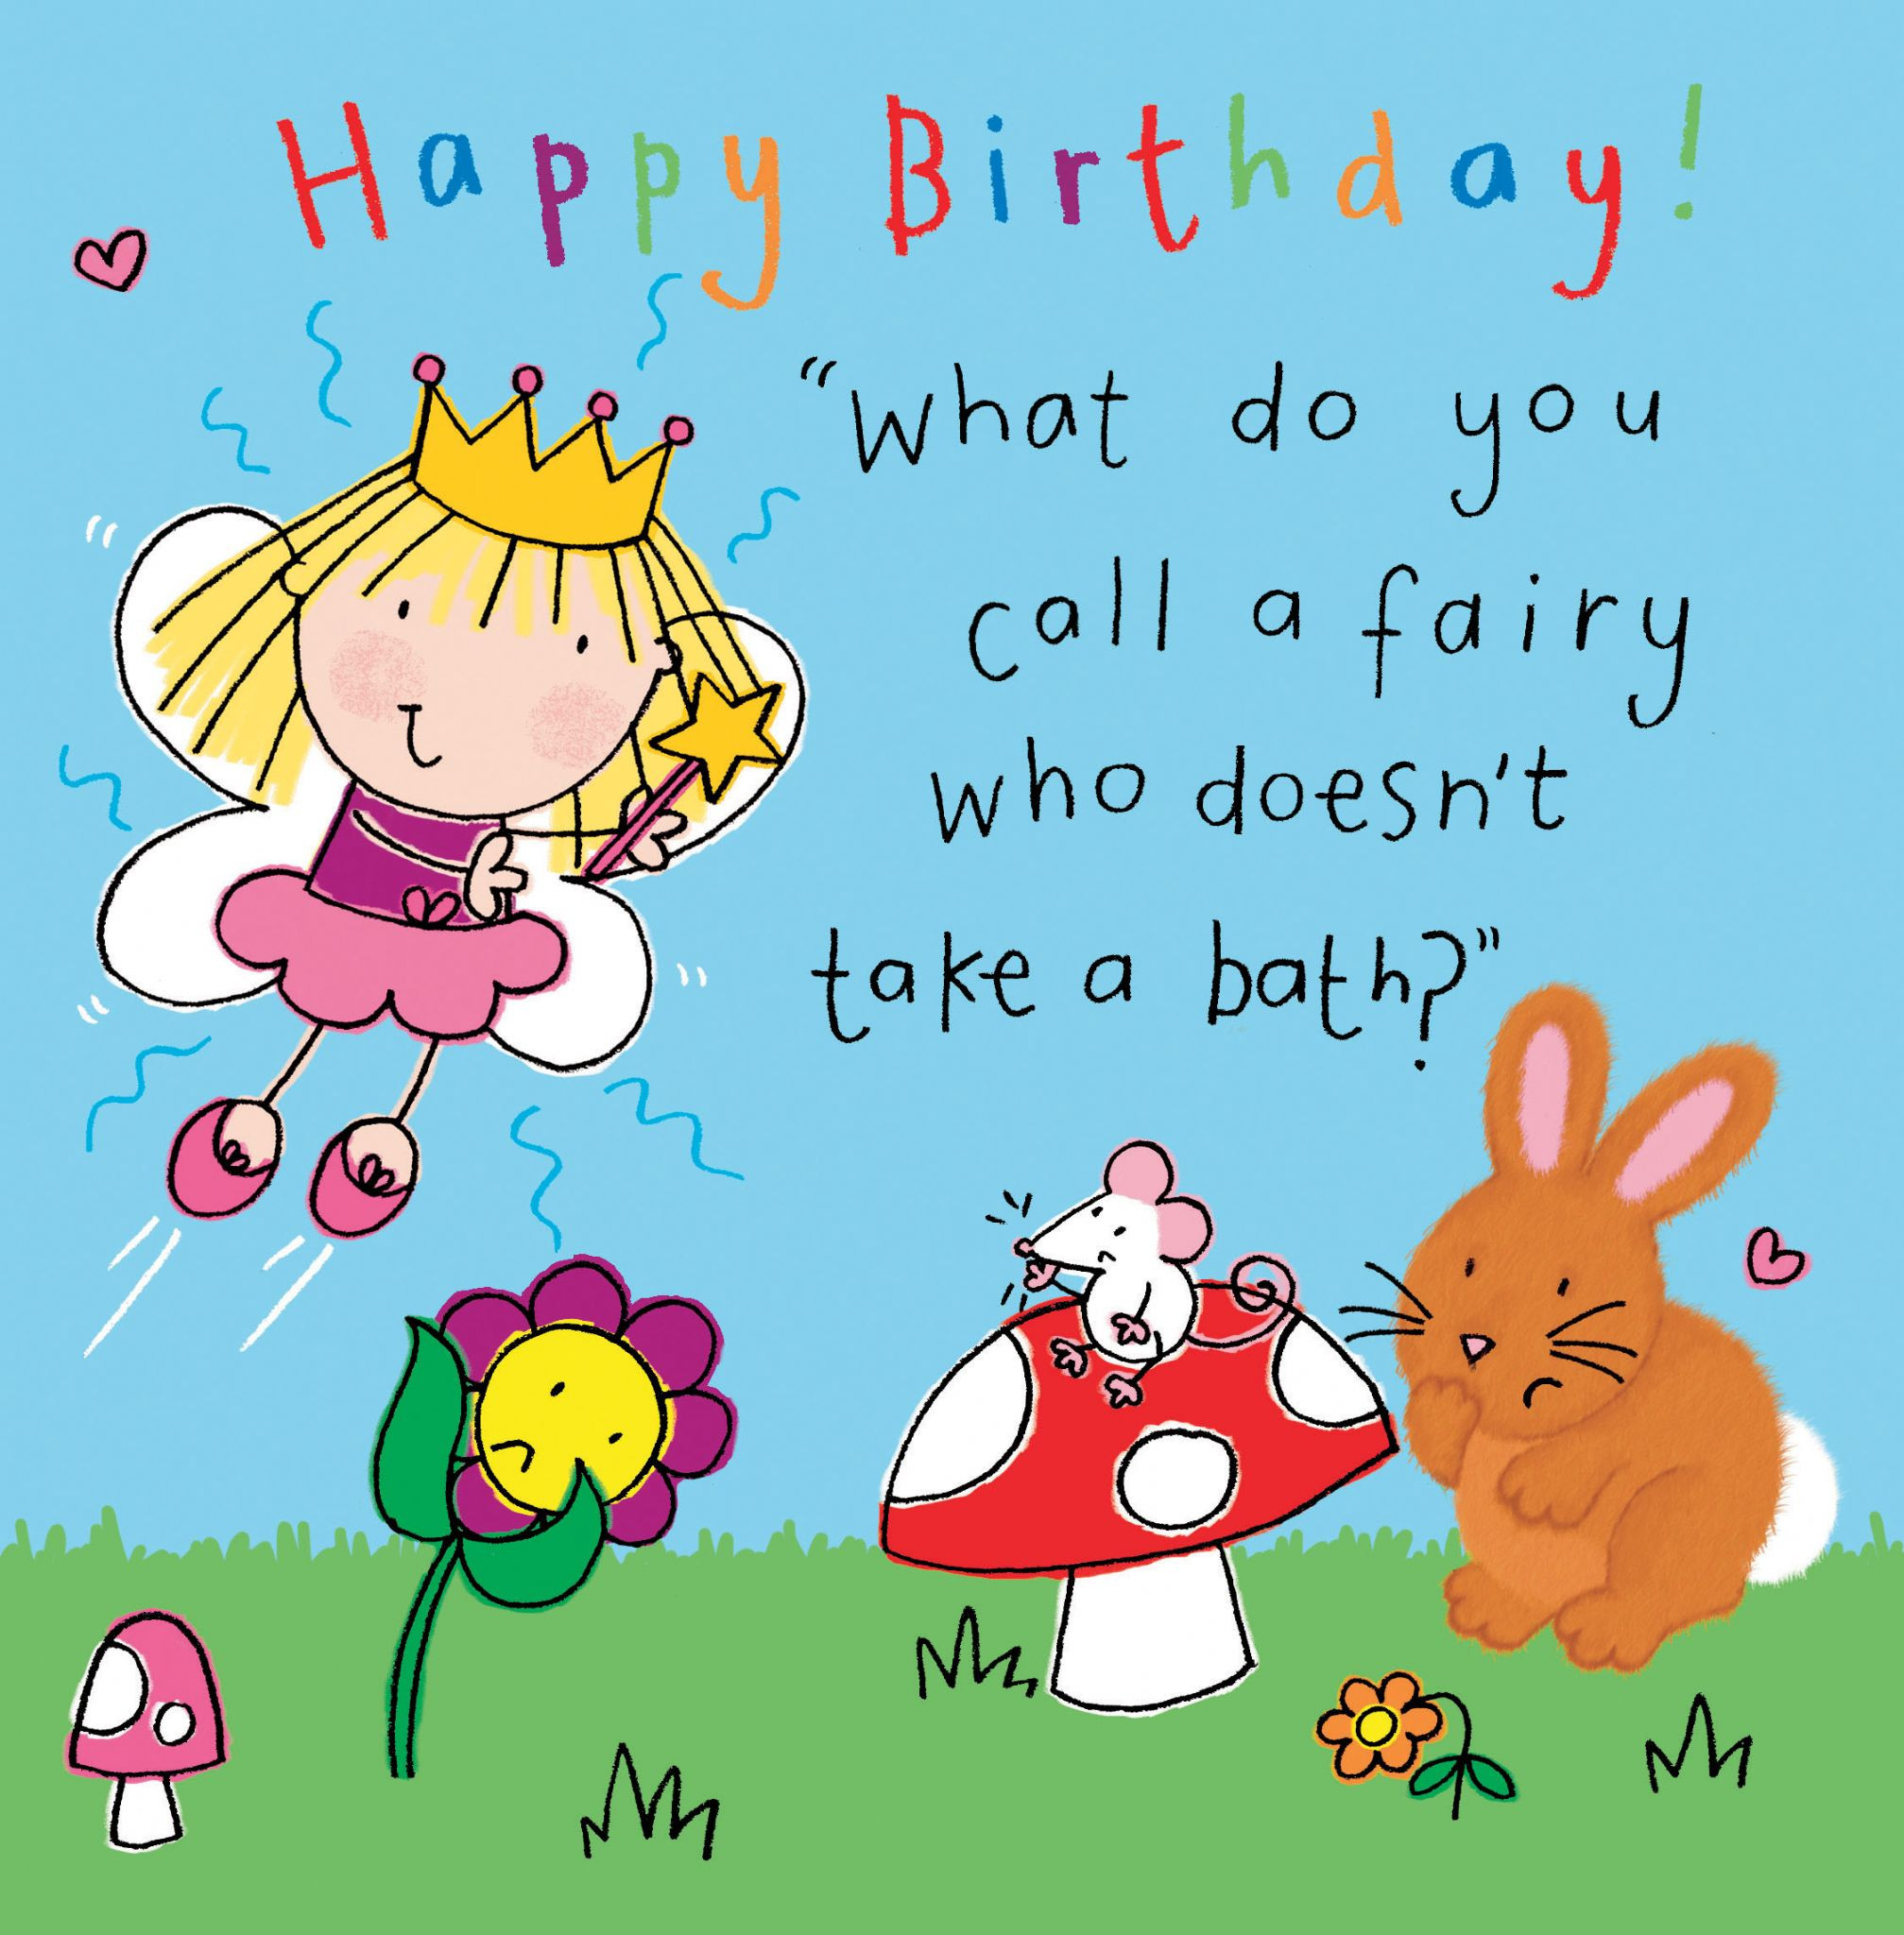 Best ideas about Funny Birthday Cards For Kids . Save or Pin Fairy Funny Joke Birthday Card For Kids TW435 Now.